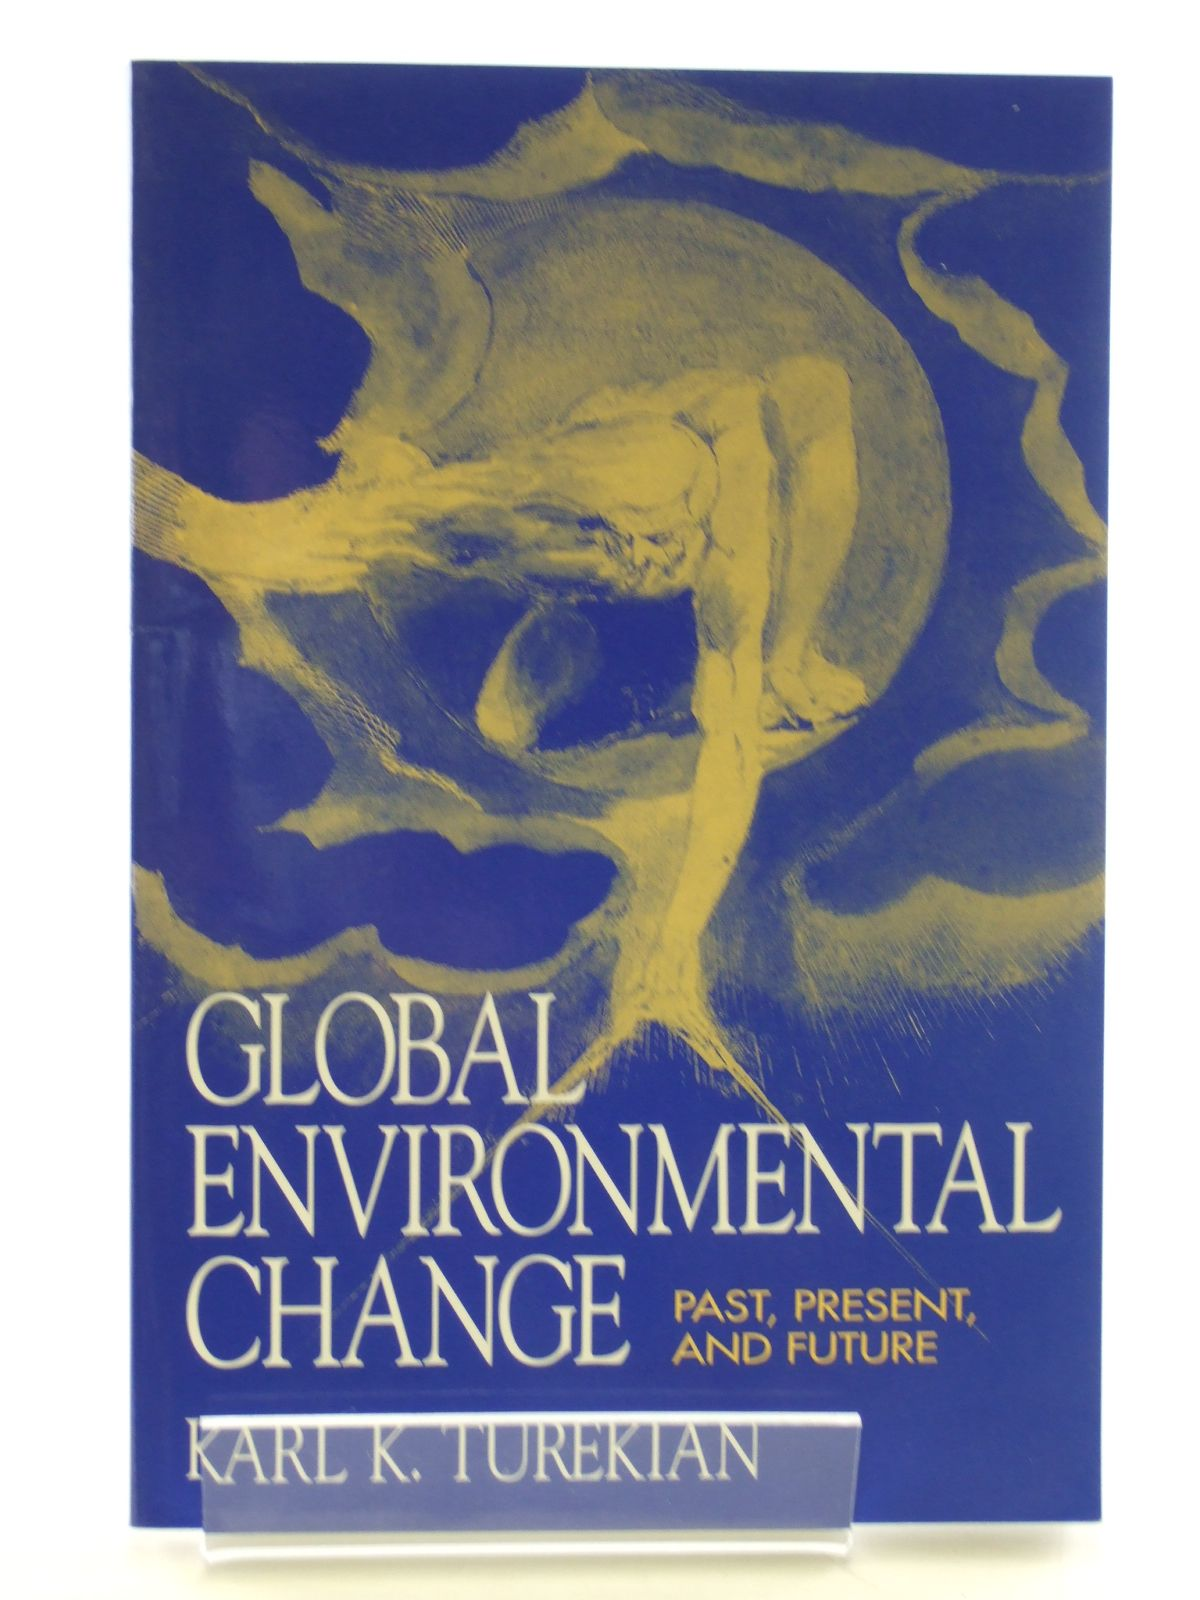 Photo of GLOBAL ENVIRONMENTAL CHANGE PAST, PRESENT AND FUTURE written by Turekian, Karl T. published by Prentice-Hall (STOCK CODE: 1602895)  for sale by Stella & Rose's Books